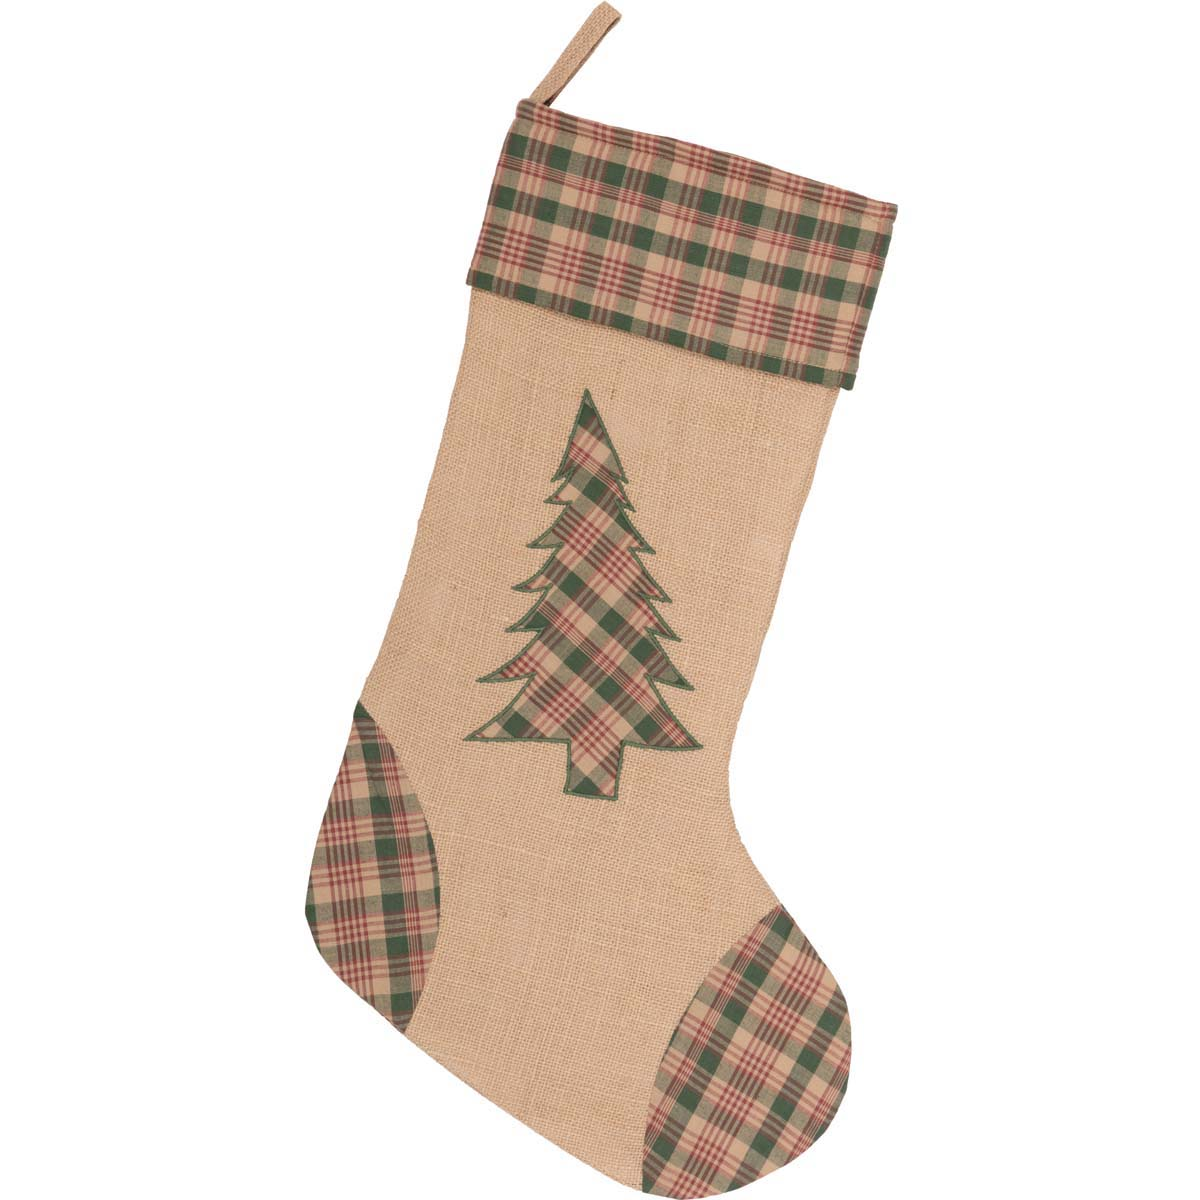 Clement Tree Stocking 12x20